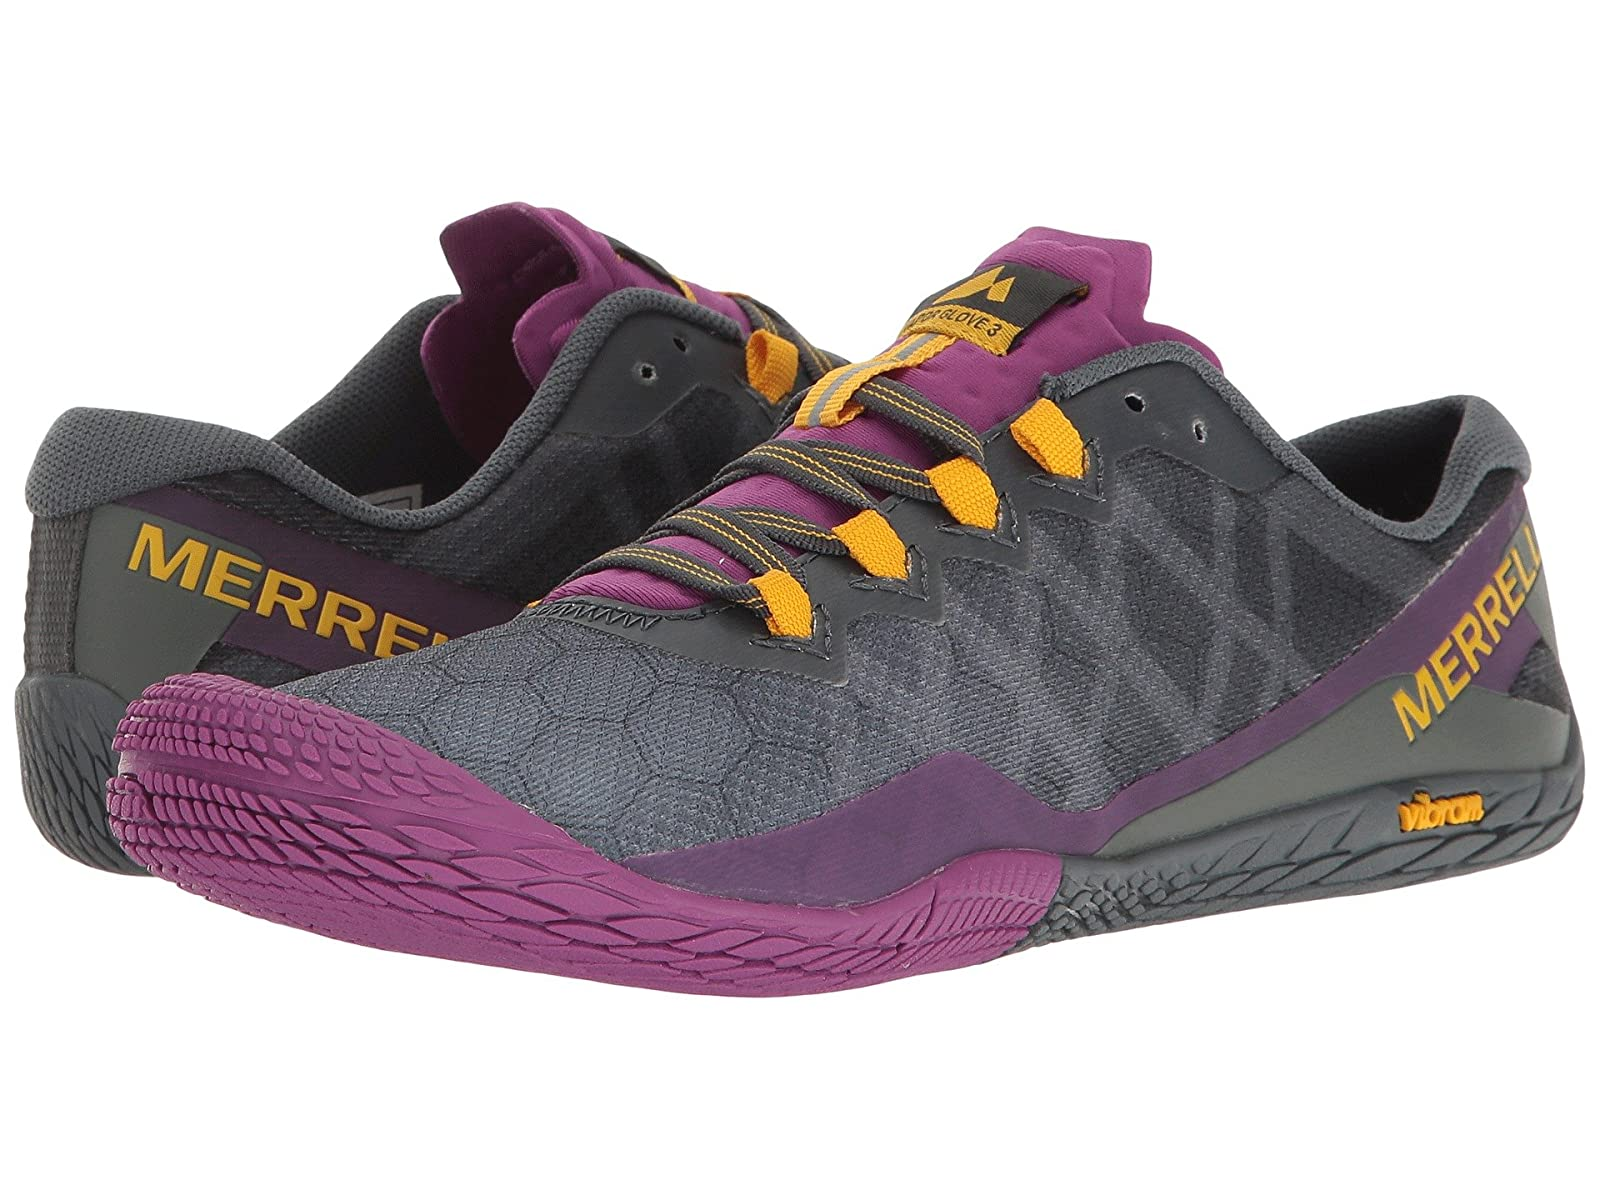 Merrell Vapor Glove 3Atmospheric grades have affordable shoes